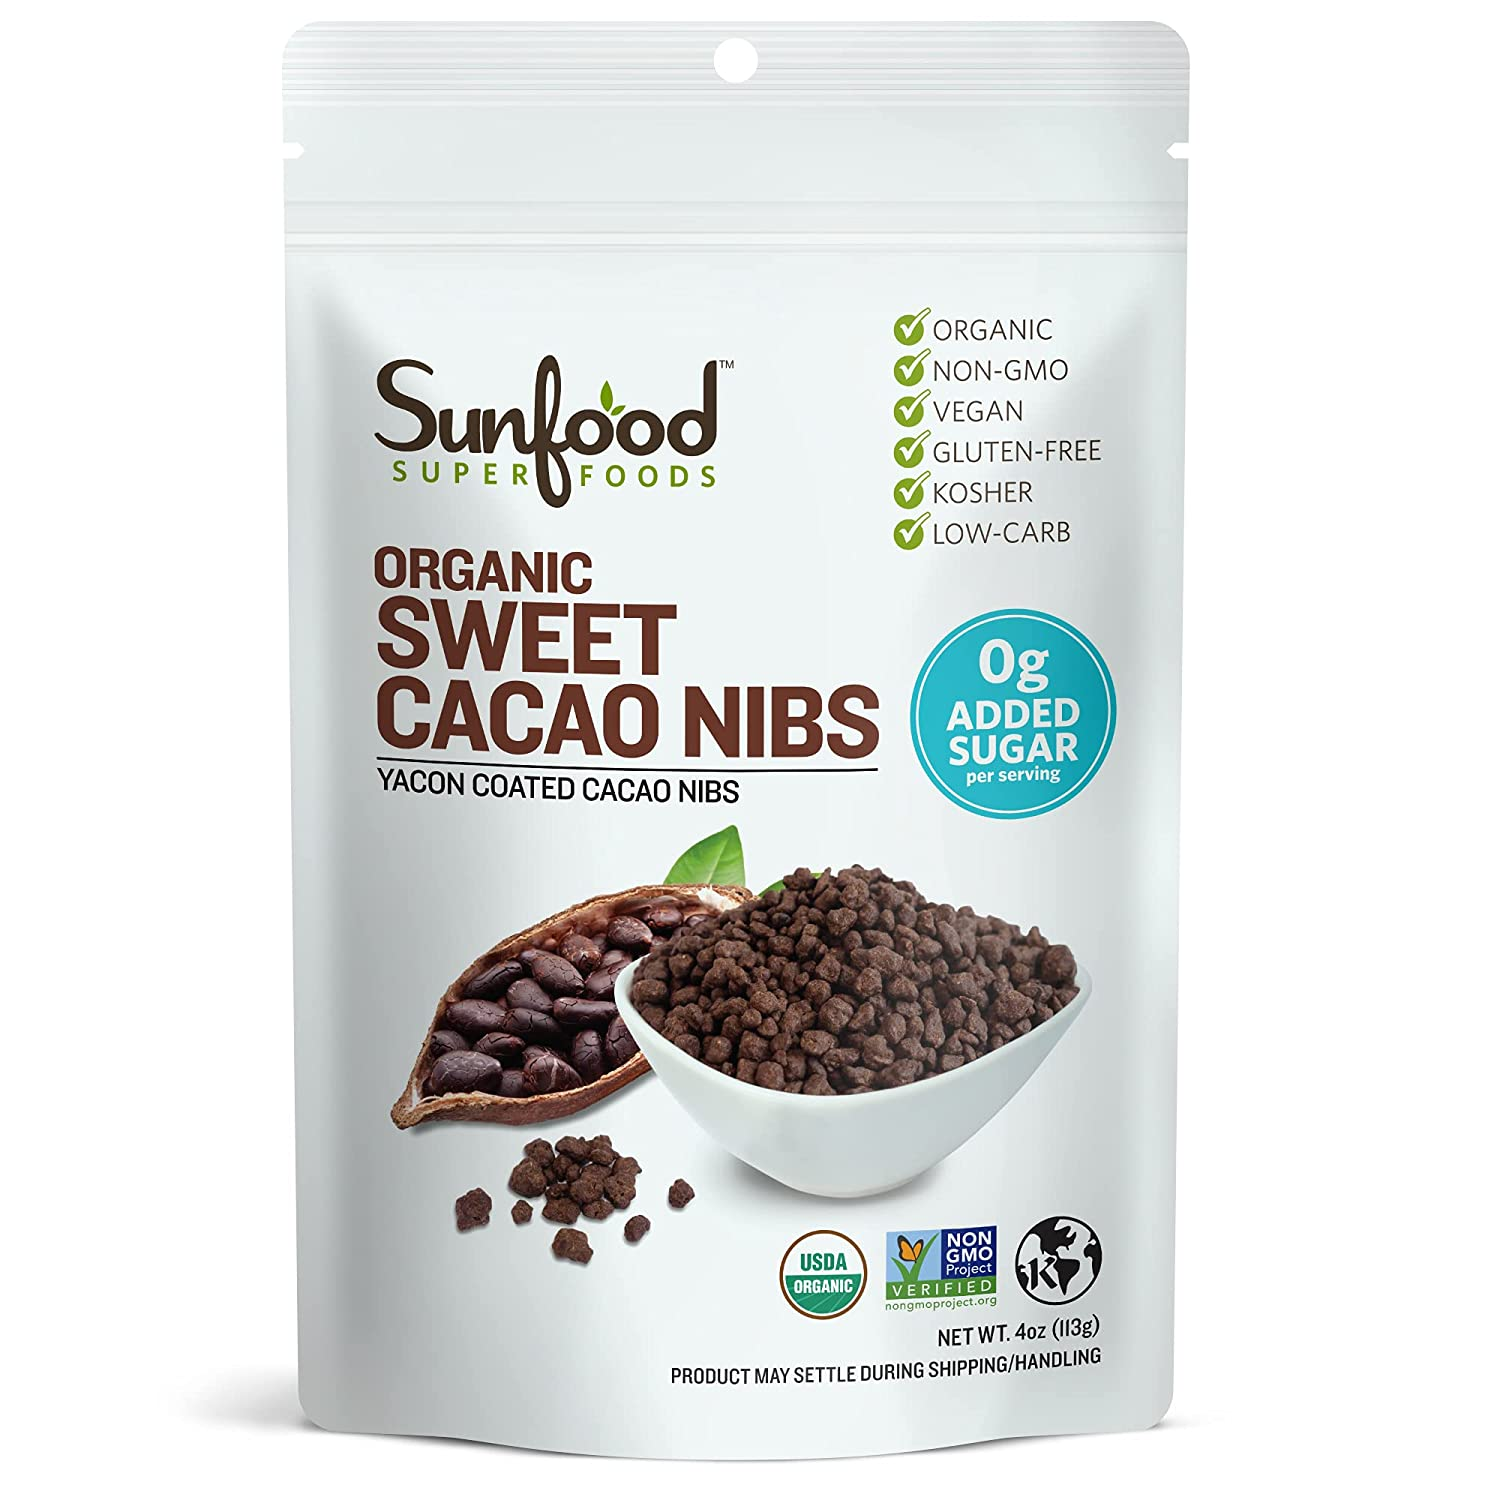 Sunfood Superfoods Sweet Cacao Nibs | All Natural Ingredients | Ultra-Clean (No Chemicals, Artificial Flavor, Additives or Fillers) | Organic, Non-GMO, Vegan, Gluten Free | 4 oz Bag